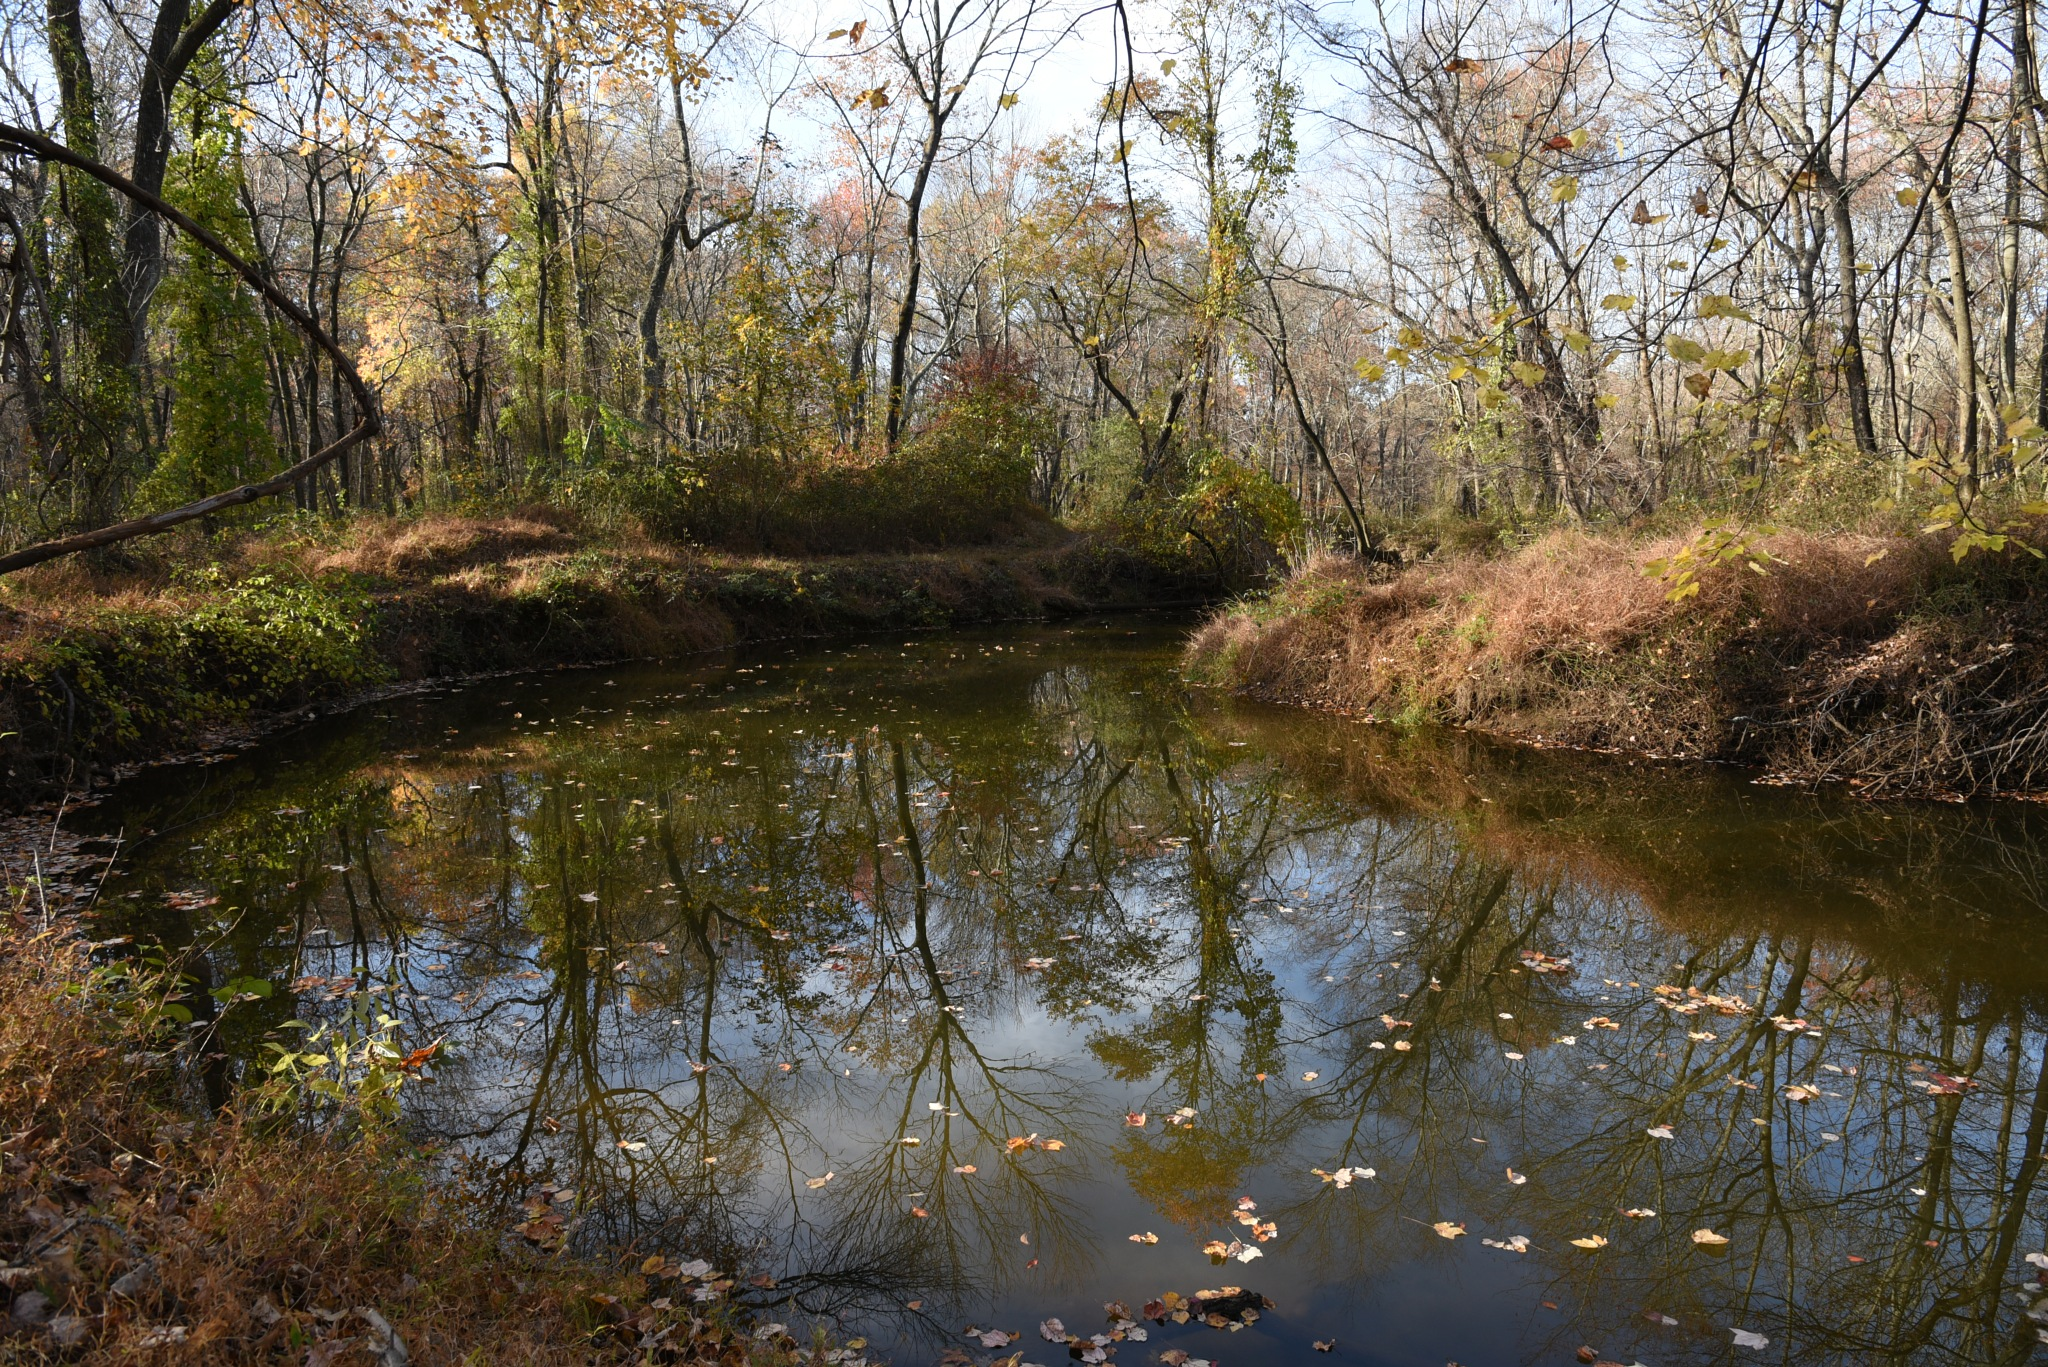 Van Nest Wildlife Refuge - Stream dappled with the fallen leaves of trees by Vizzpat